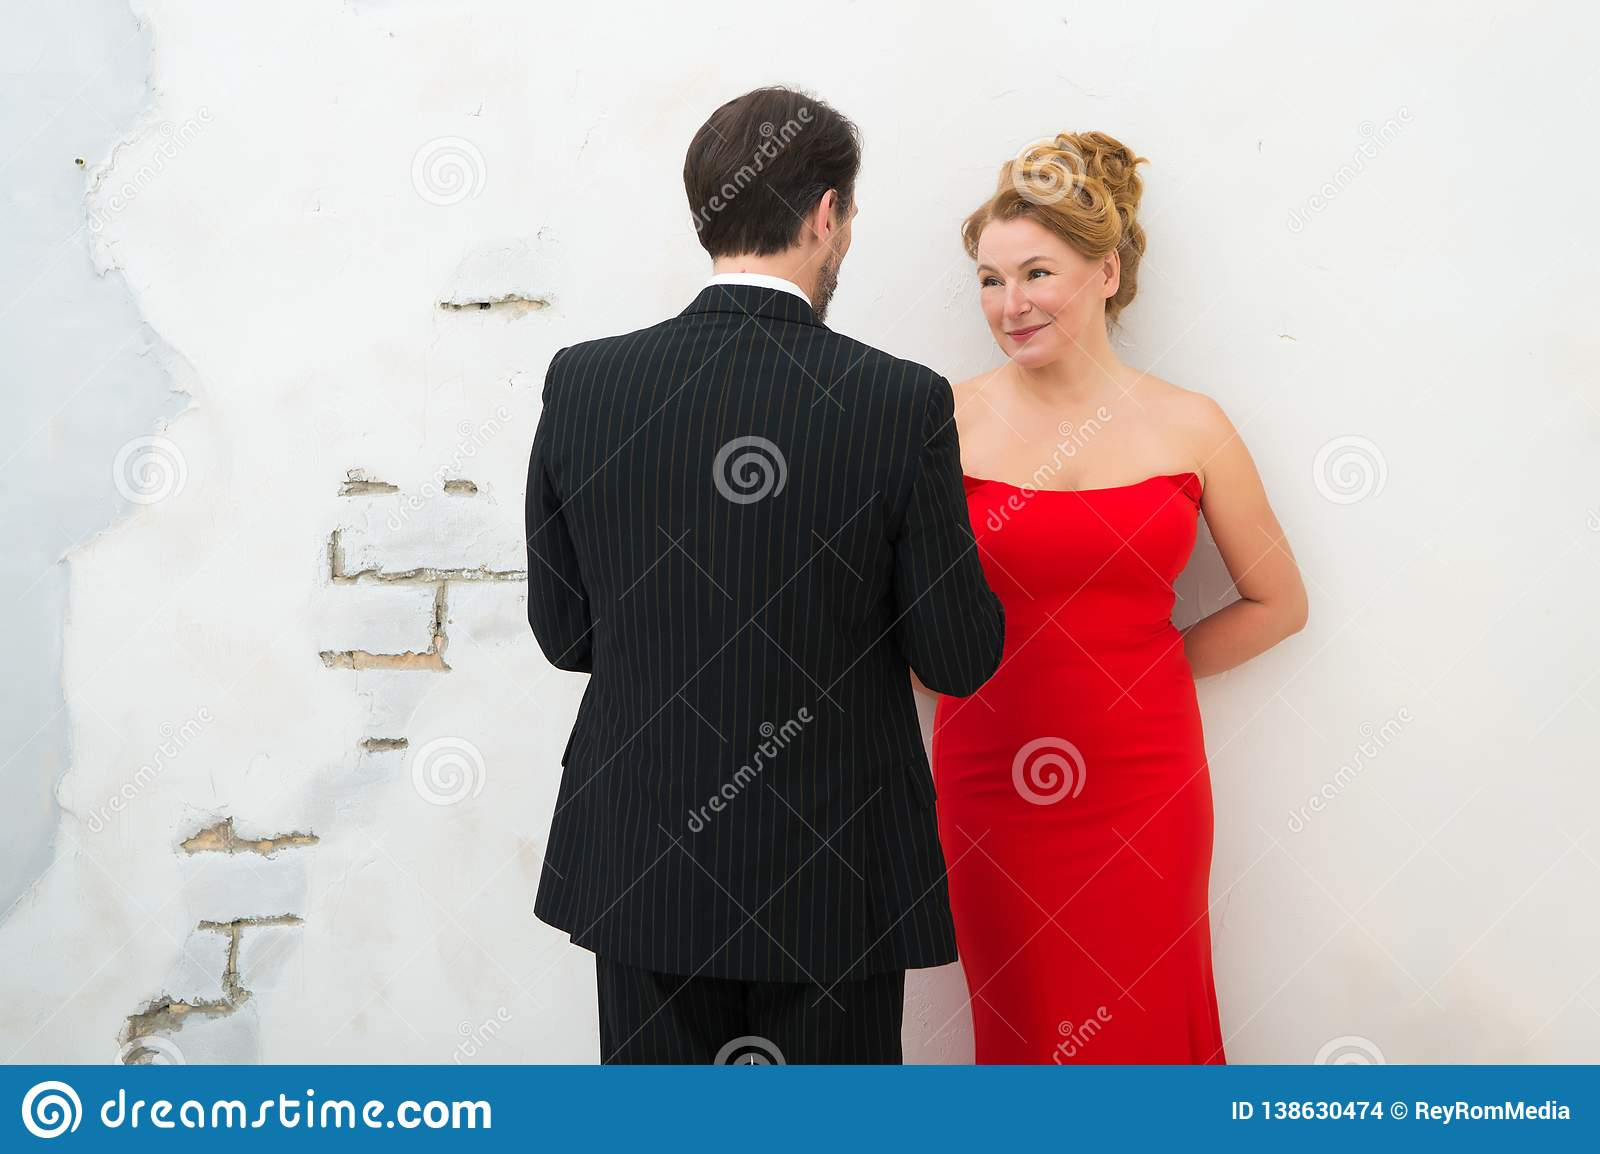 Positive elegant woman in red dress smiling sincerely while looking at her husband